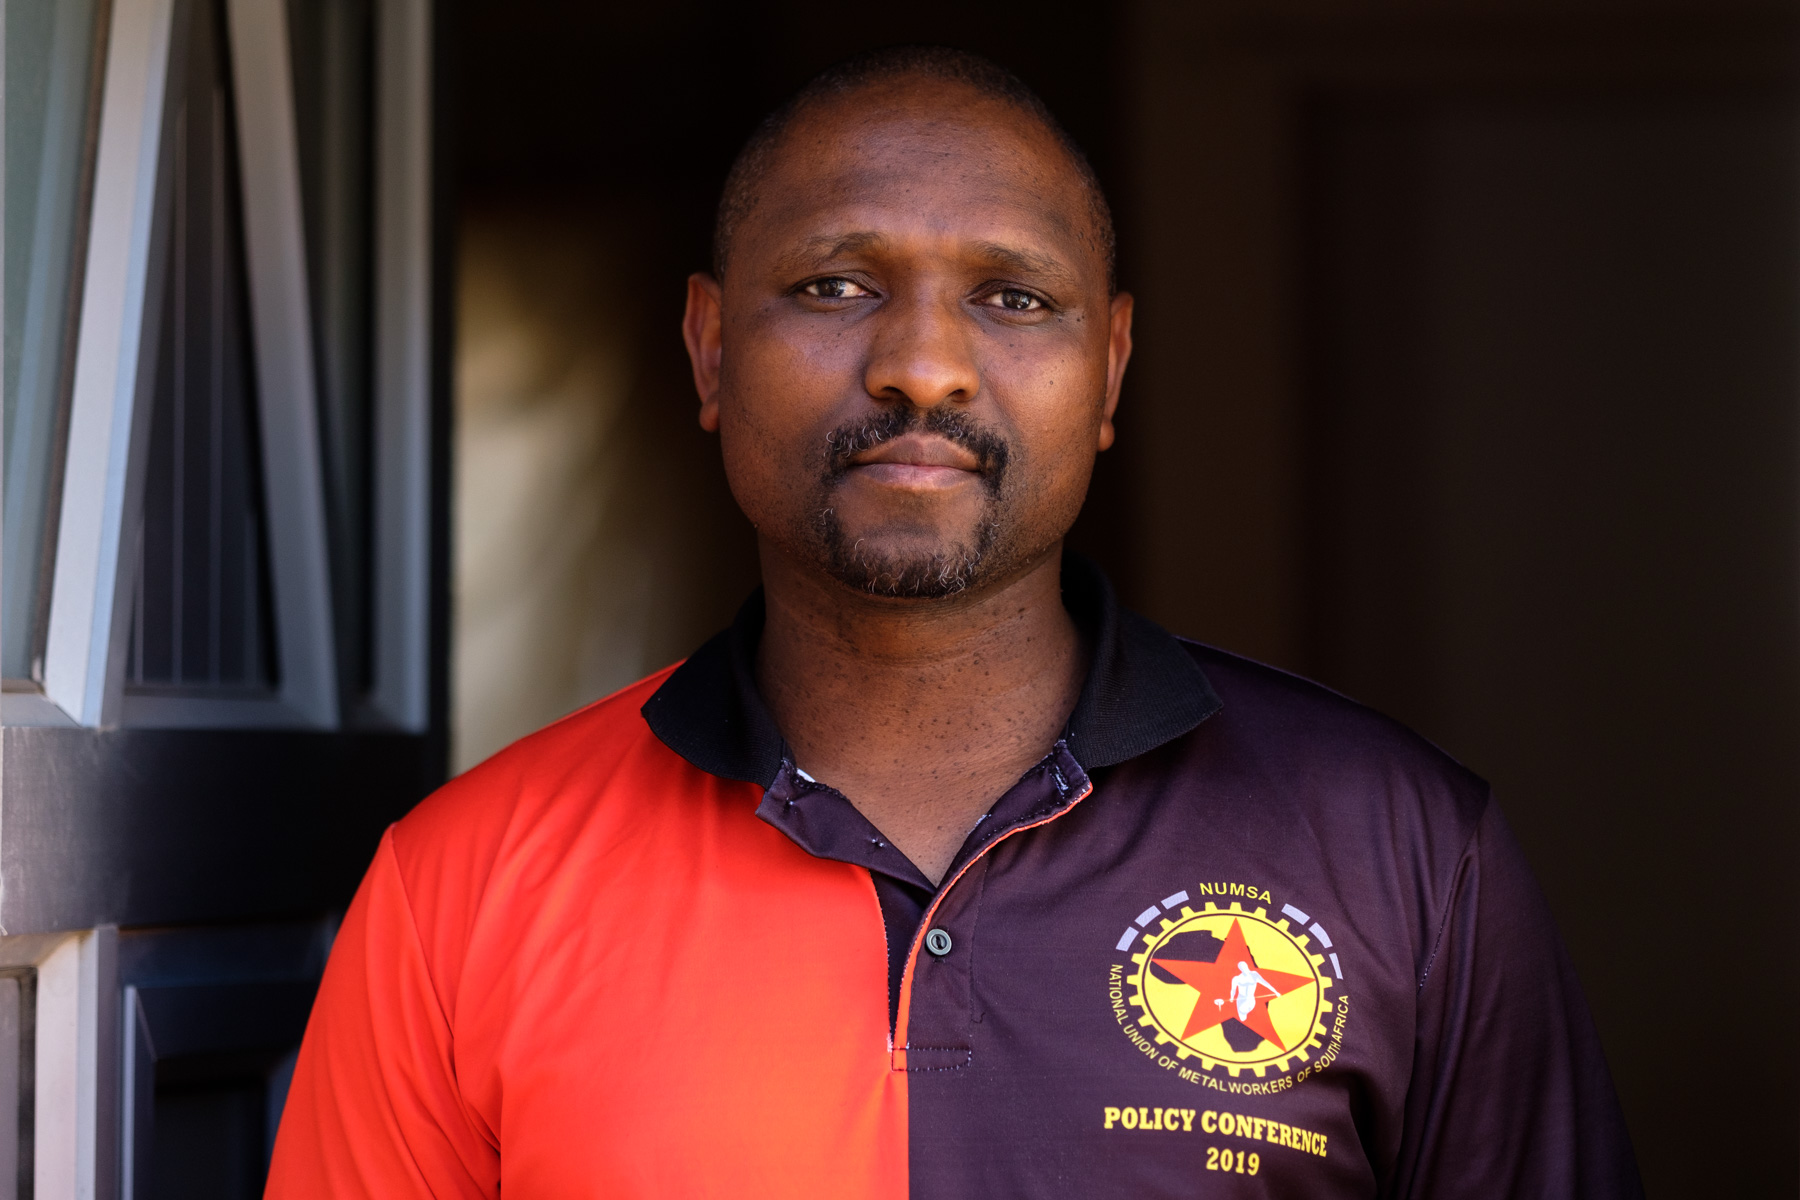 2 April 2020: Vuyo Lefele, regional secretary of the National Union of Metalworkers of South Africa, at his home in Philippi.